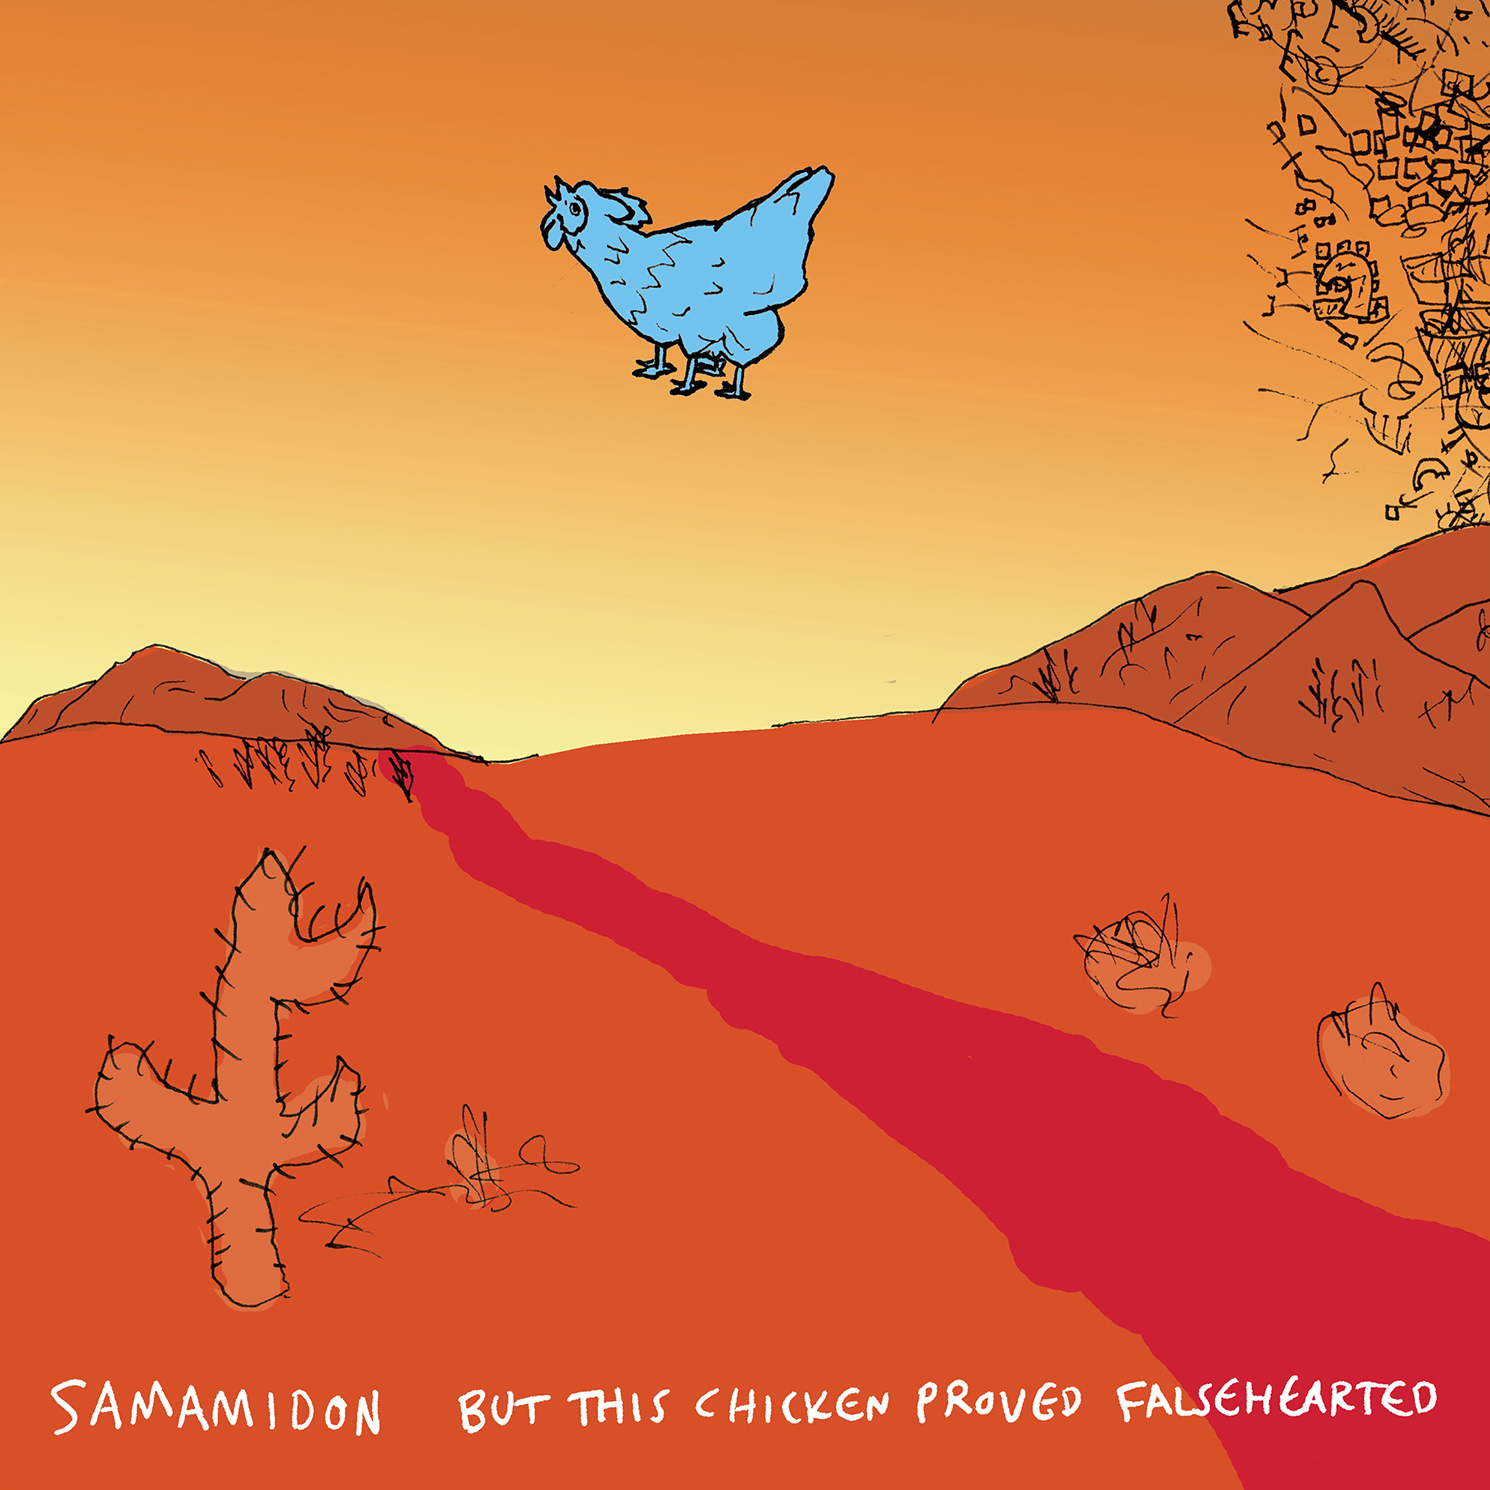 Sam Amidon - But This Chicken Proved Falsehearted  Release Date: December 4, 2015 Label: Omnivore Recordings  SERVICE: Mastering NUMBER OF DISCS: 1 GENRE: Rock FORMAT: LP, CD   TRAILER